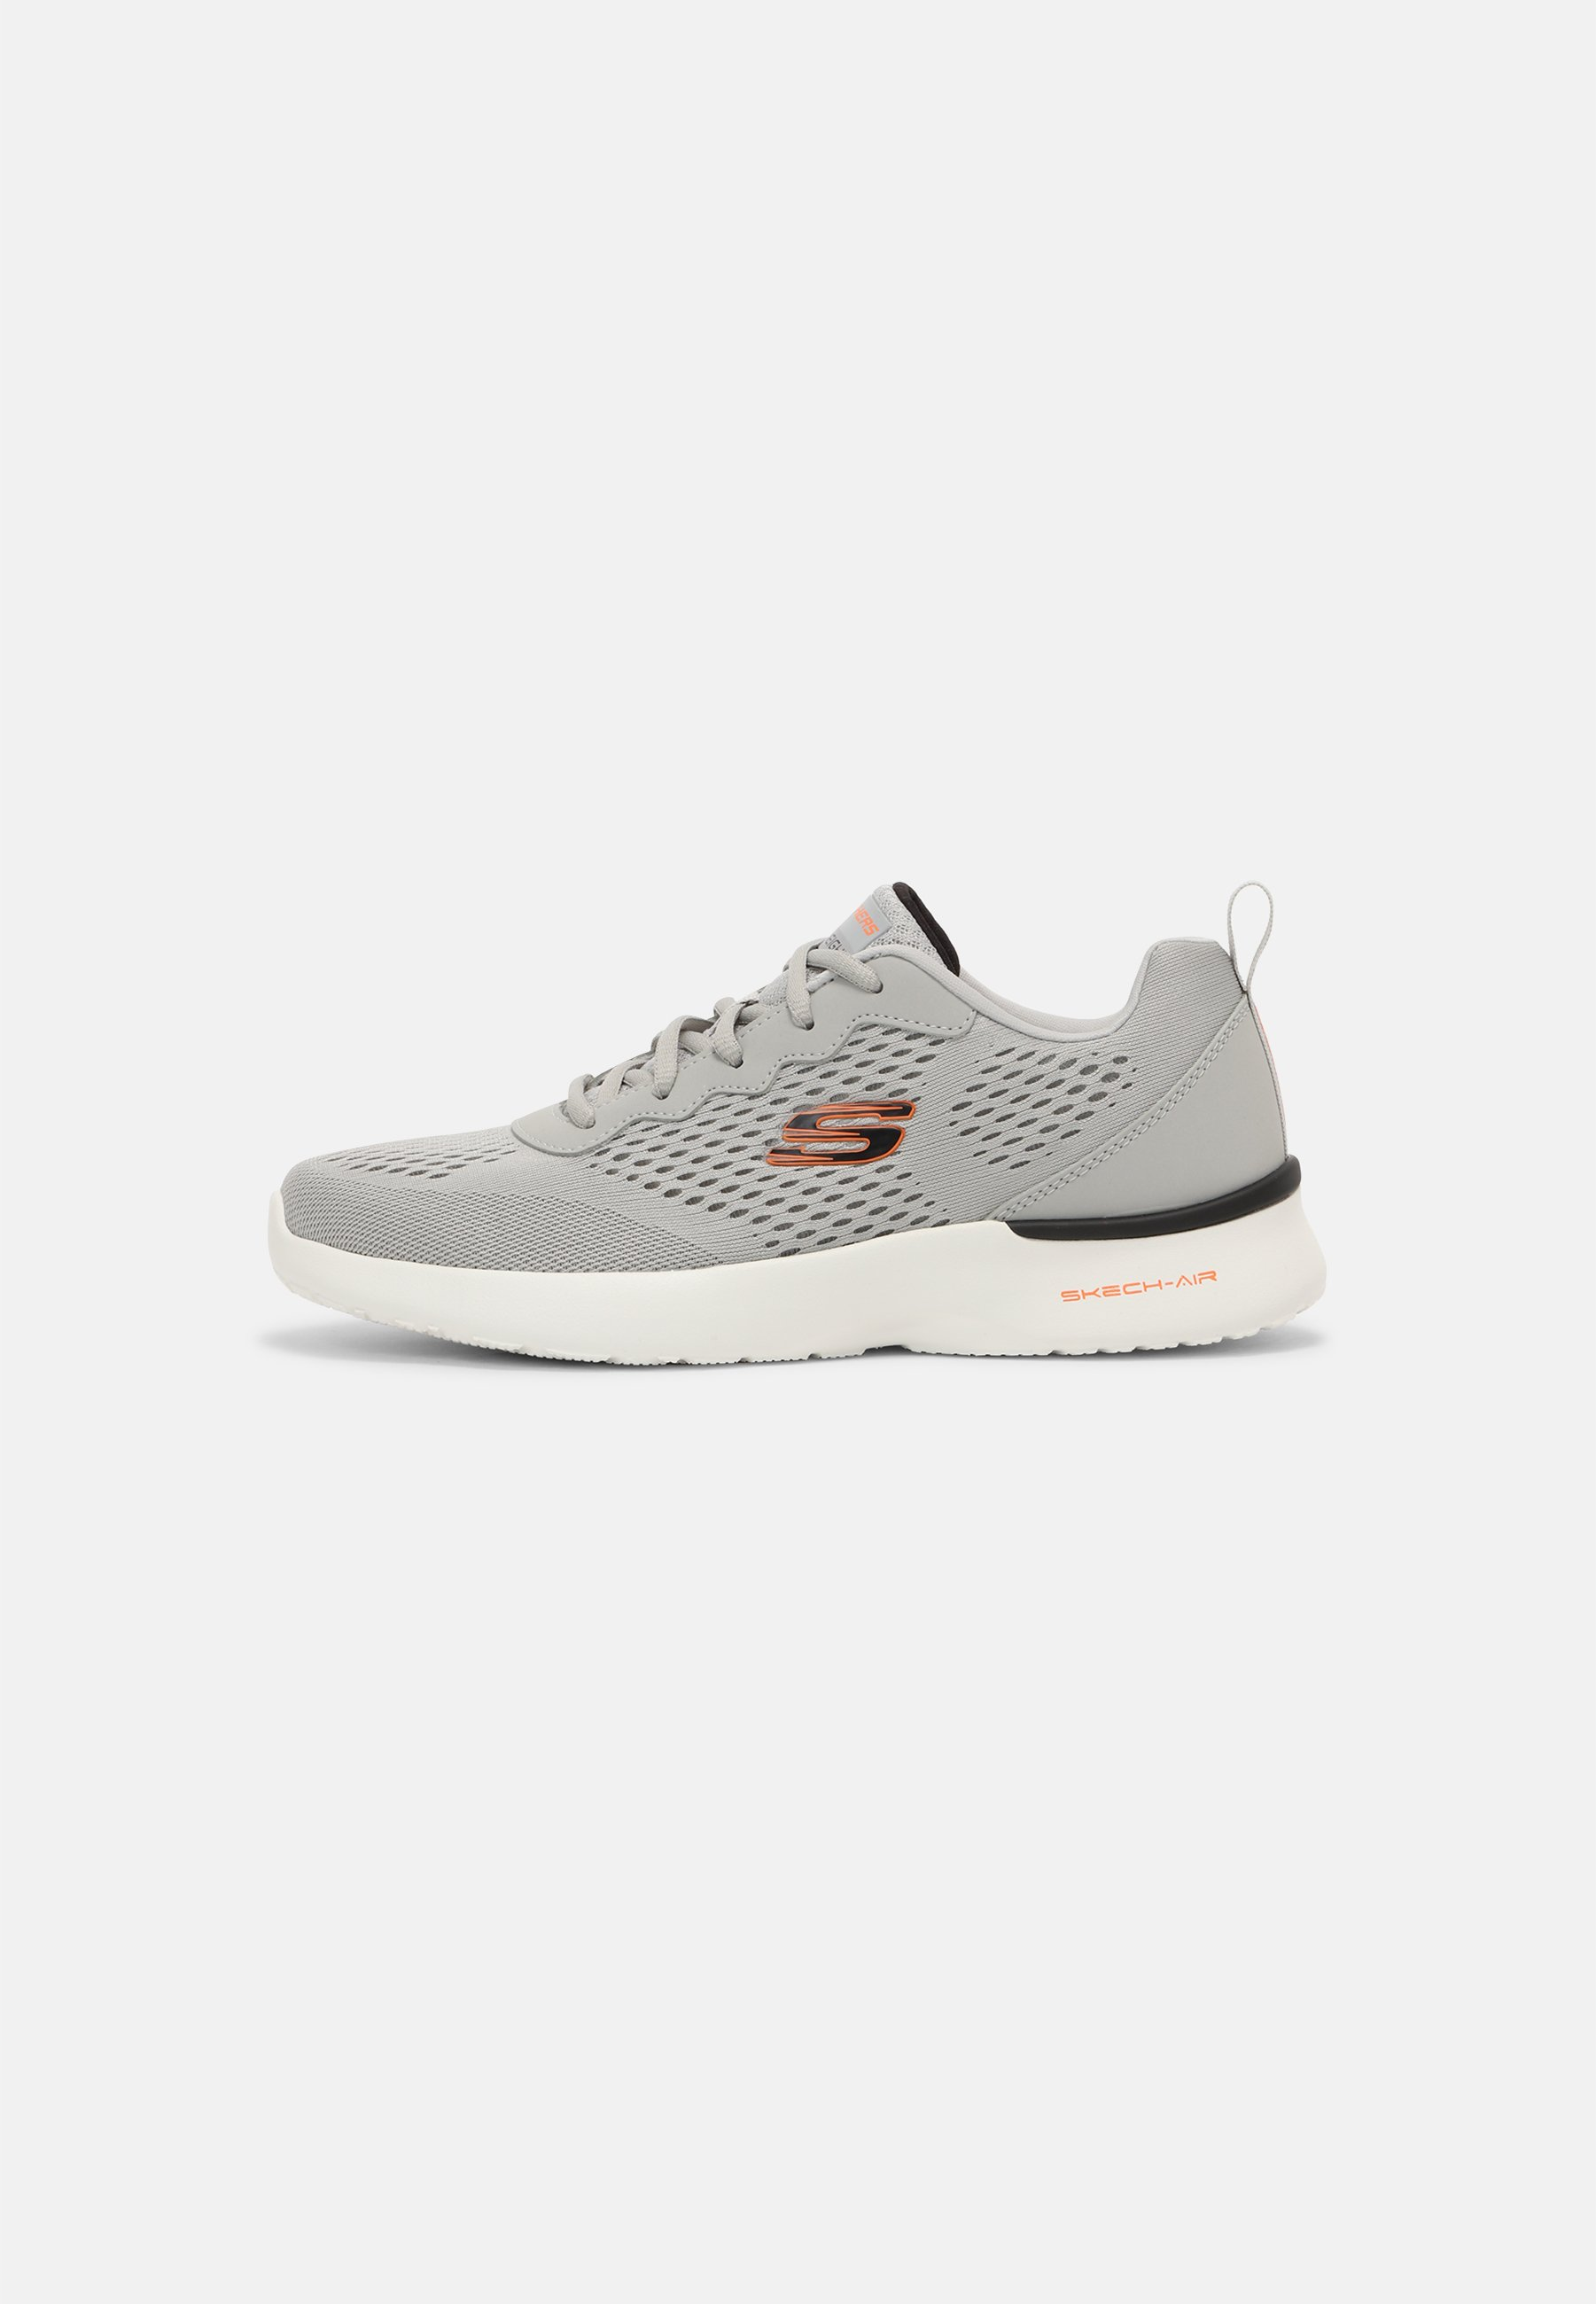 Men SKECH-AIR DYNAMIGHT TUNED UP - Trainers